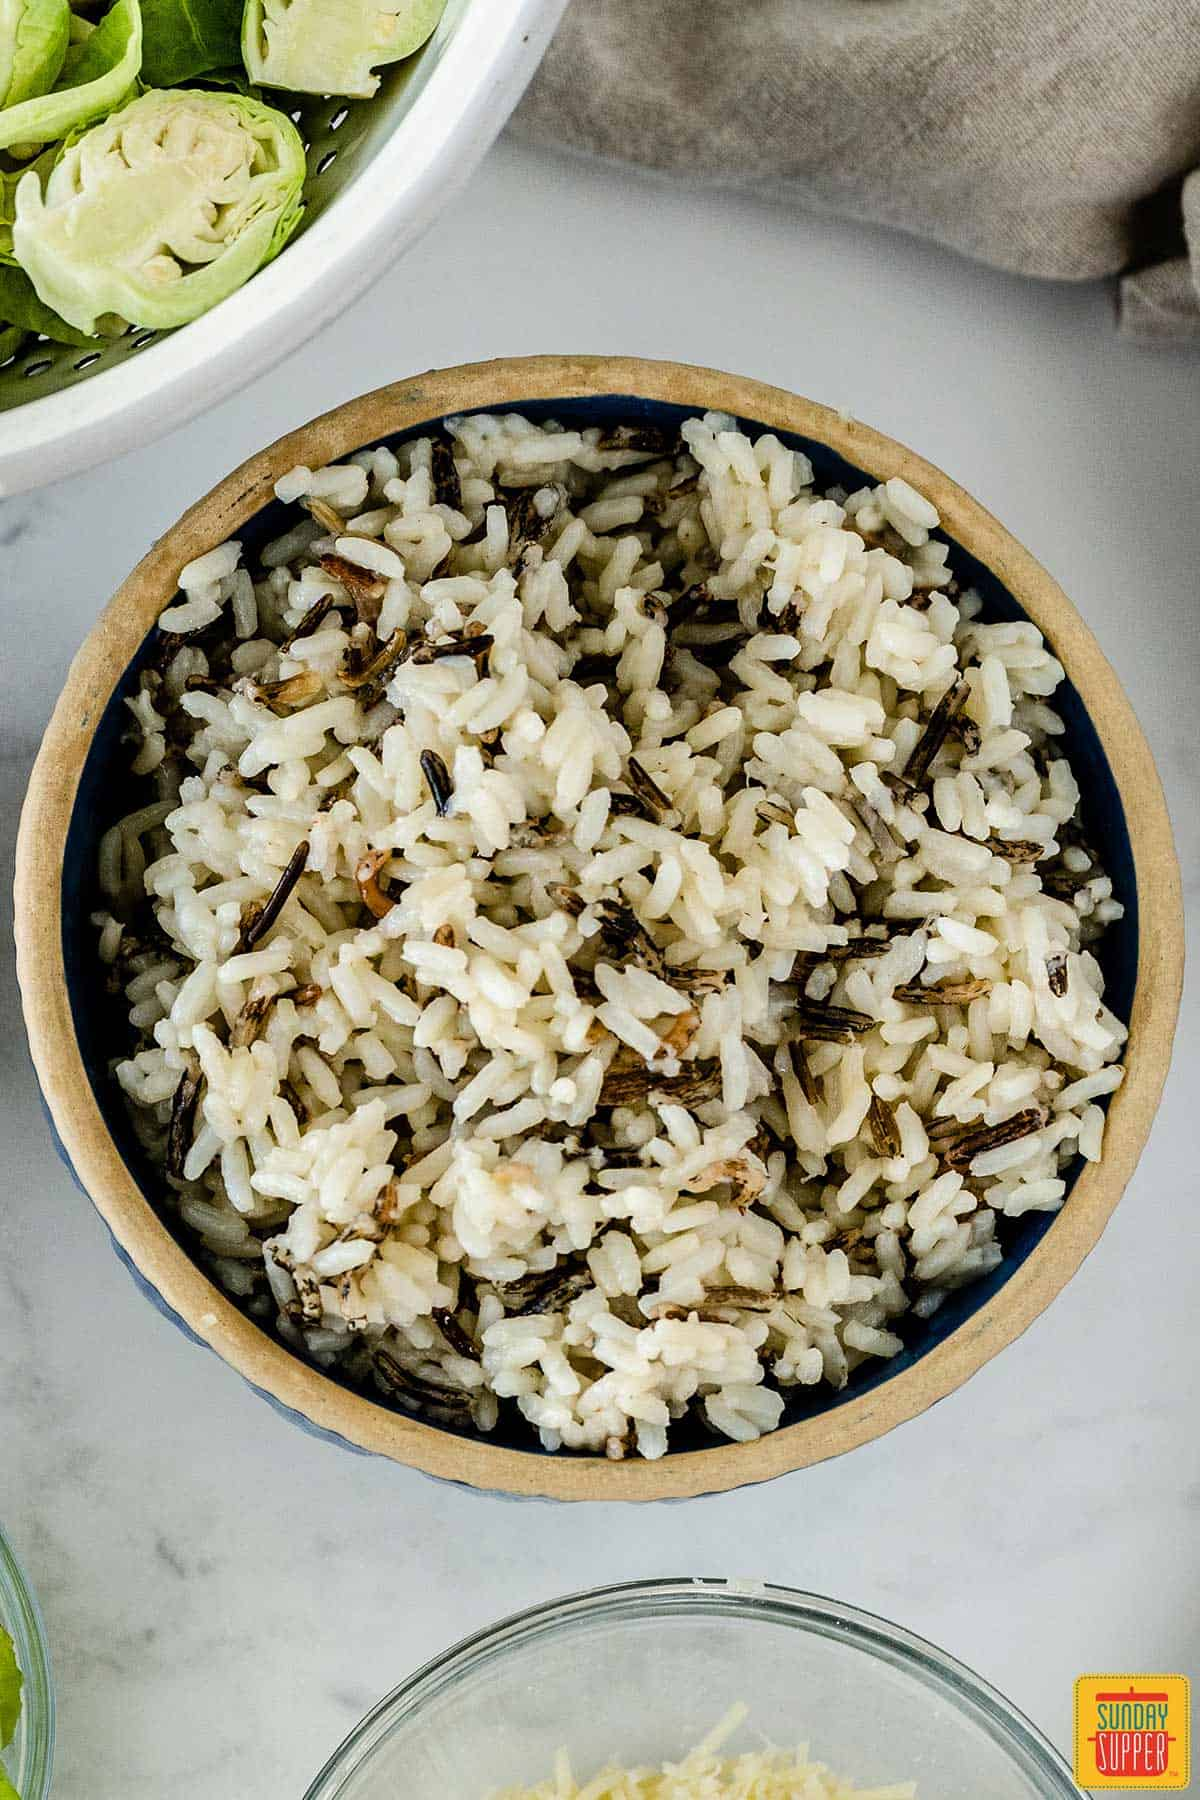 Cooked wild rice up close in a bowl